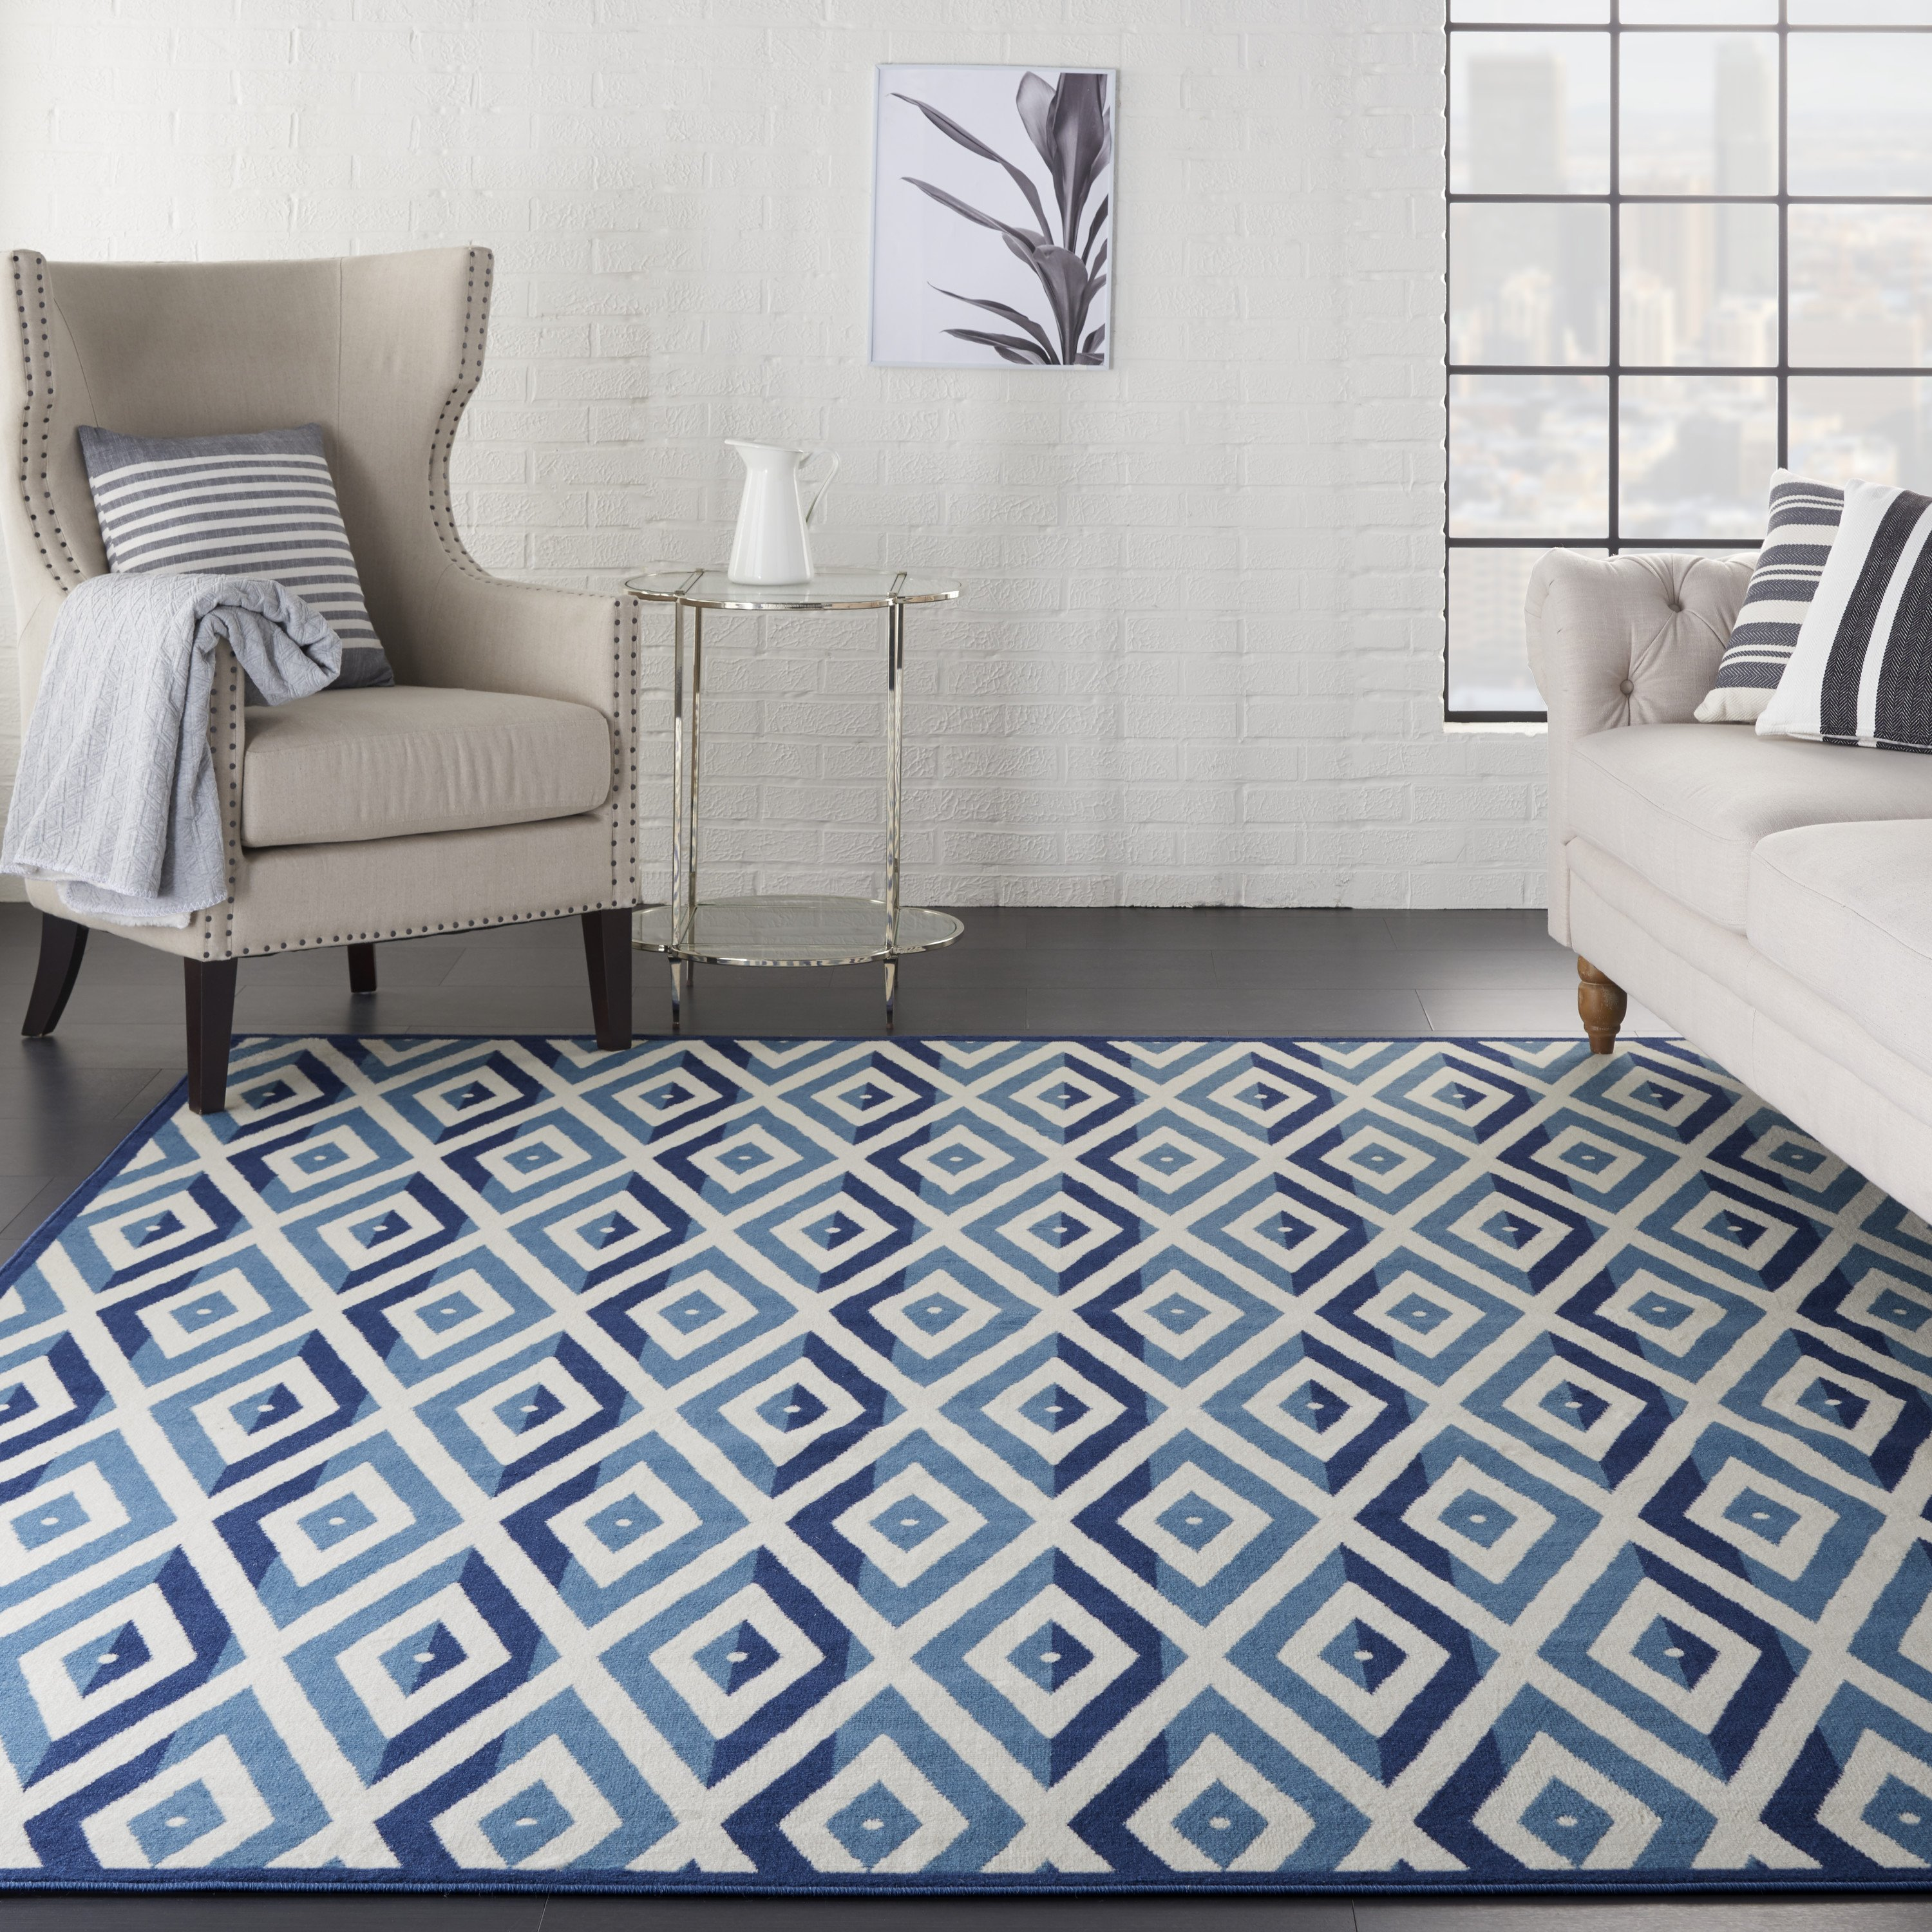 Girls Bedroom area Rugs New Nourison Grafix Geometric White Blue area Rug